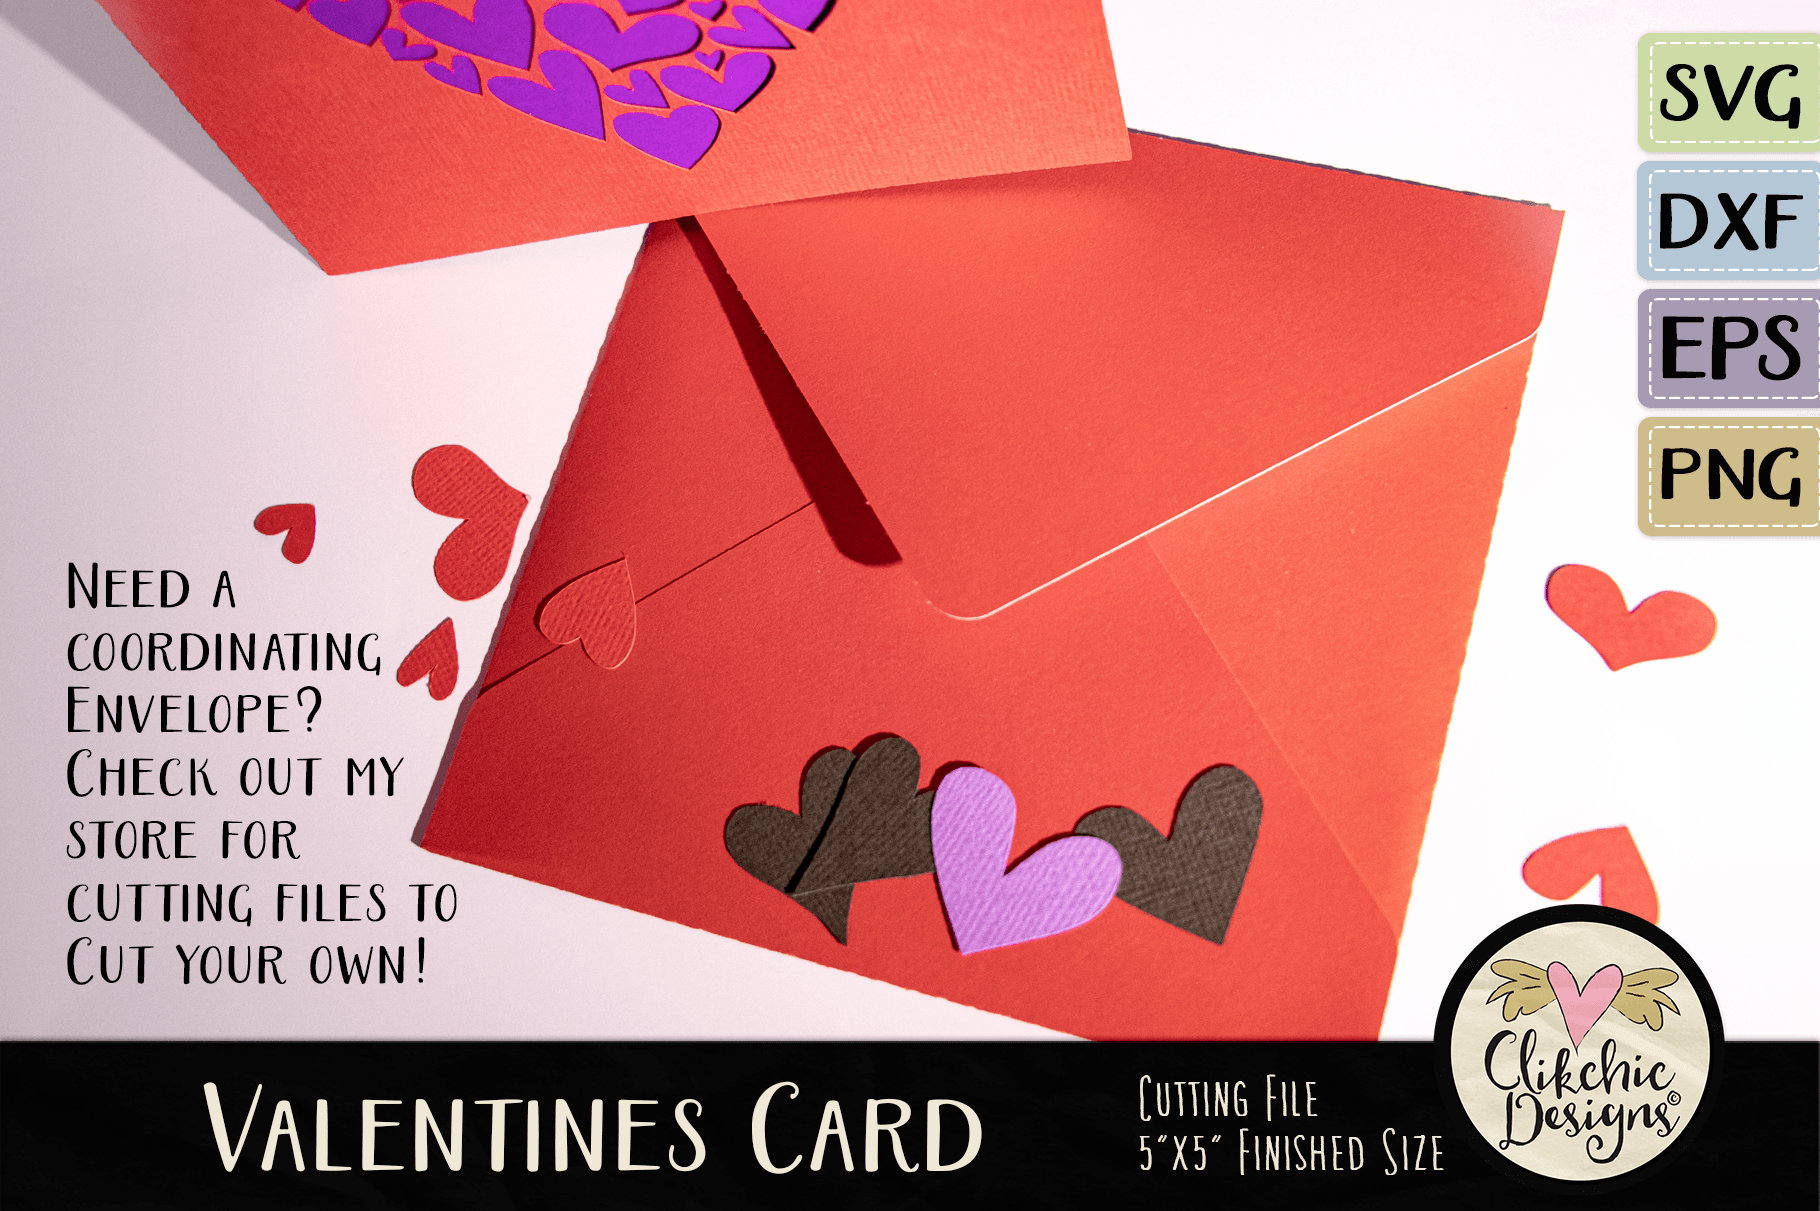 Valentine Hearts Svg Card Cutting File By Clikchic Designs